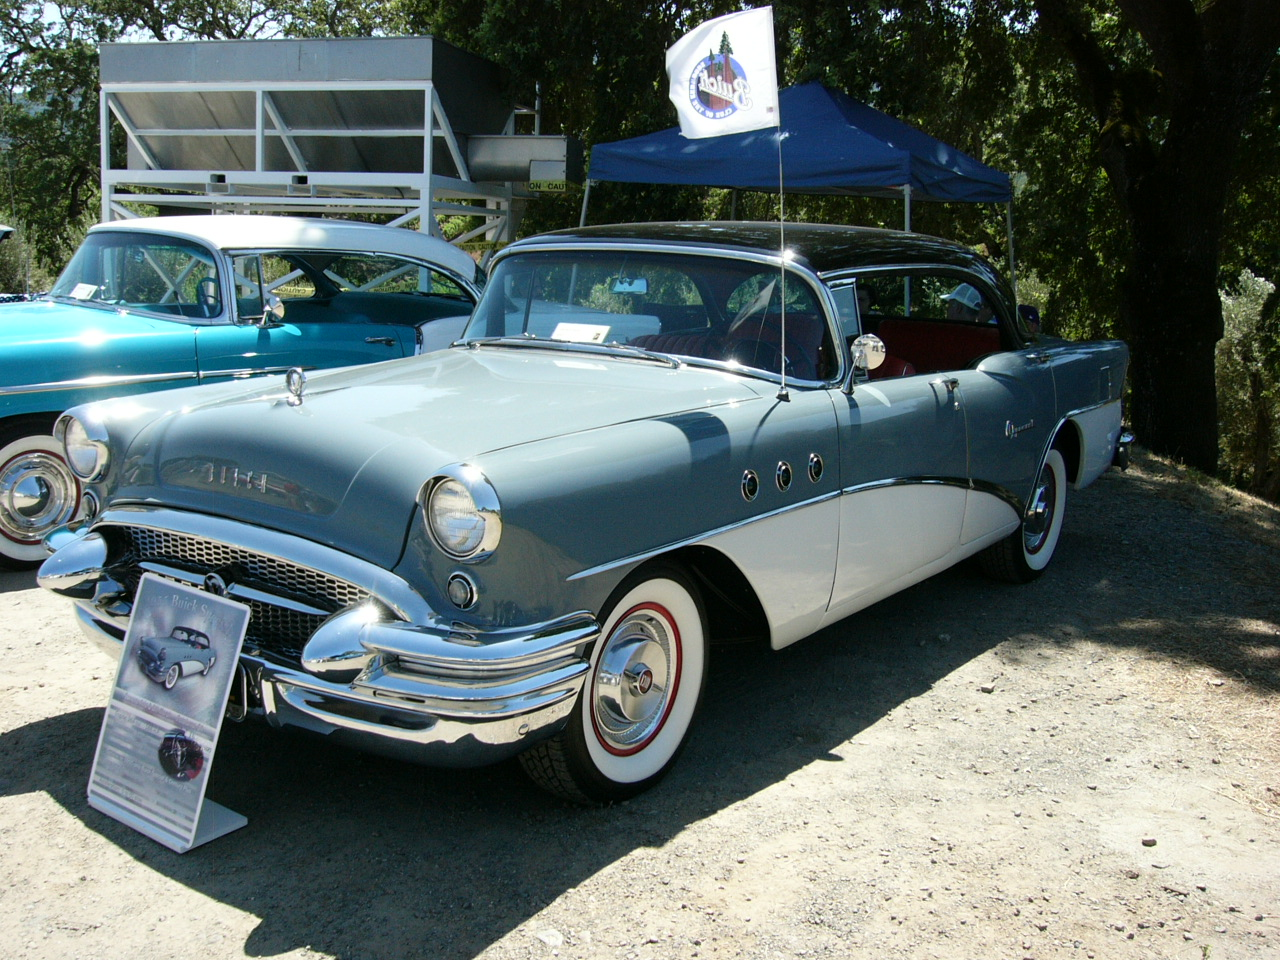 1955 buick special 4dr hardtop by roadtripdog on deviantart